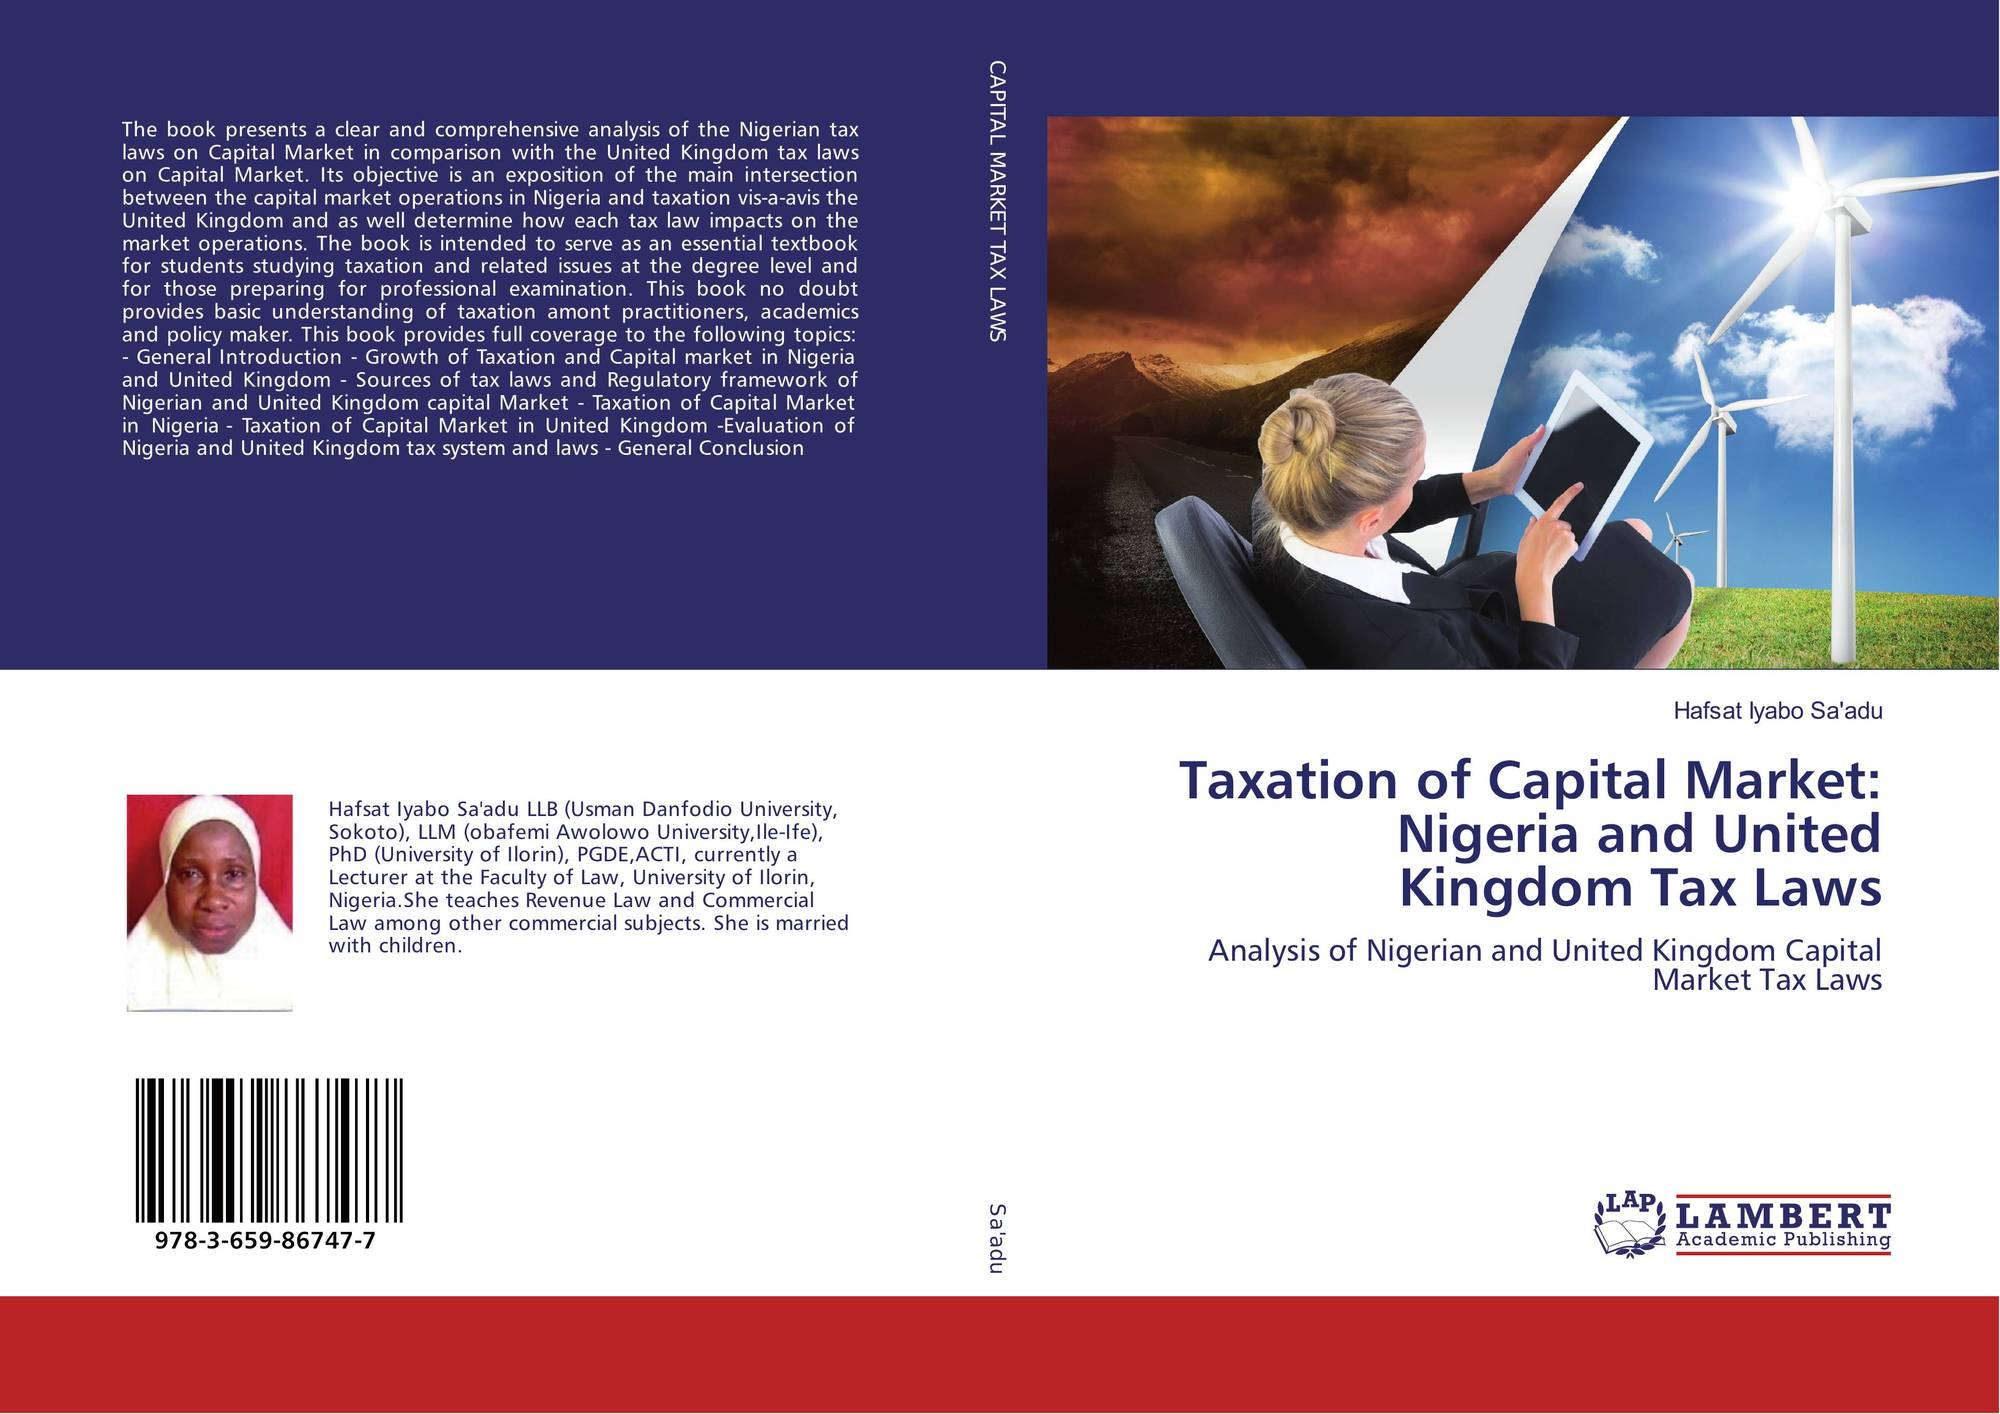 uk tax system essay However, the uk is not the only country reforming its corporation tax system six out of 19 g20 countries have announced plans to cut their corporate statutory tax rate by 2020 (uk.